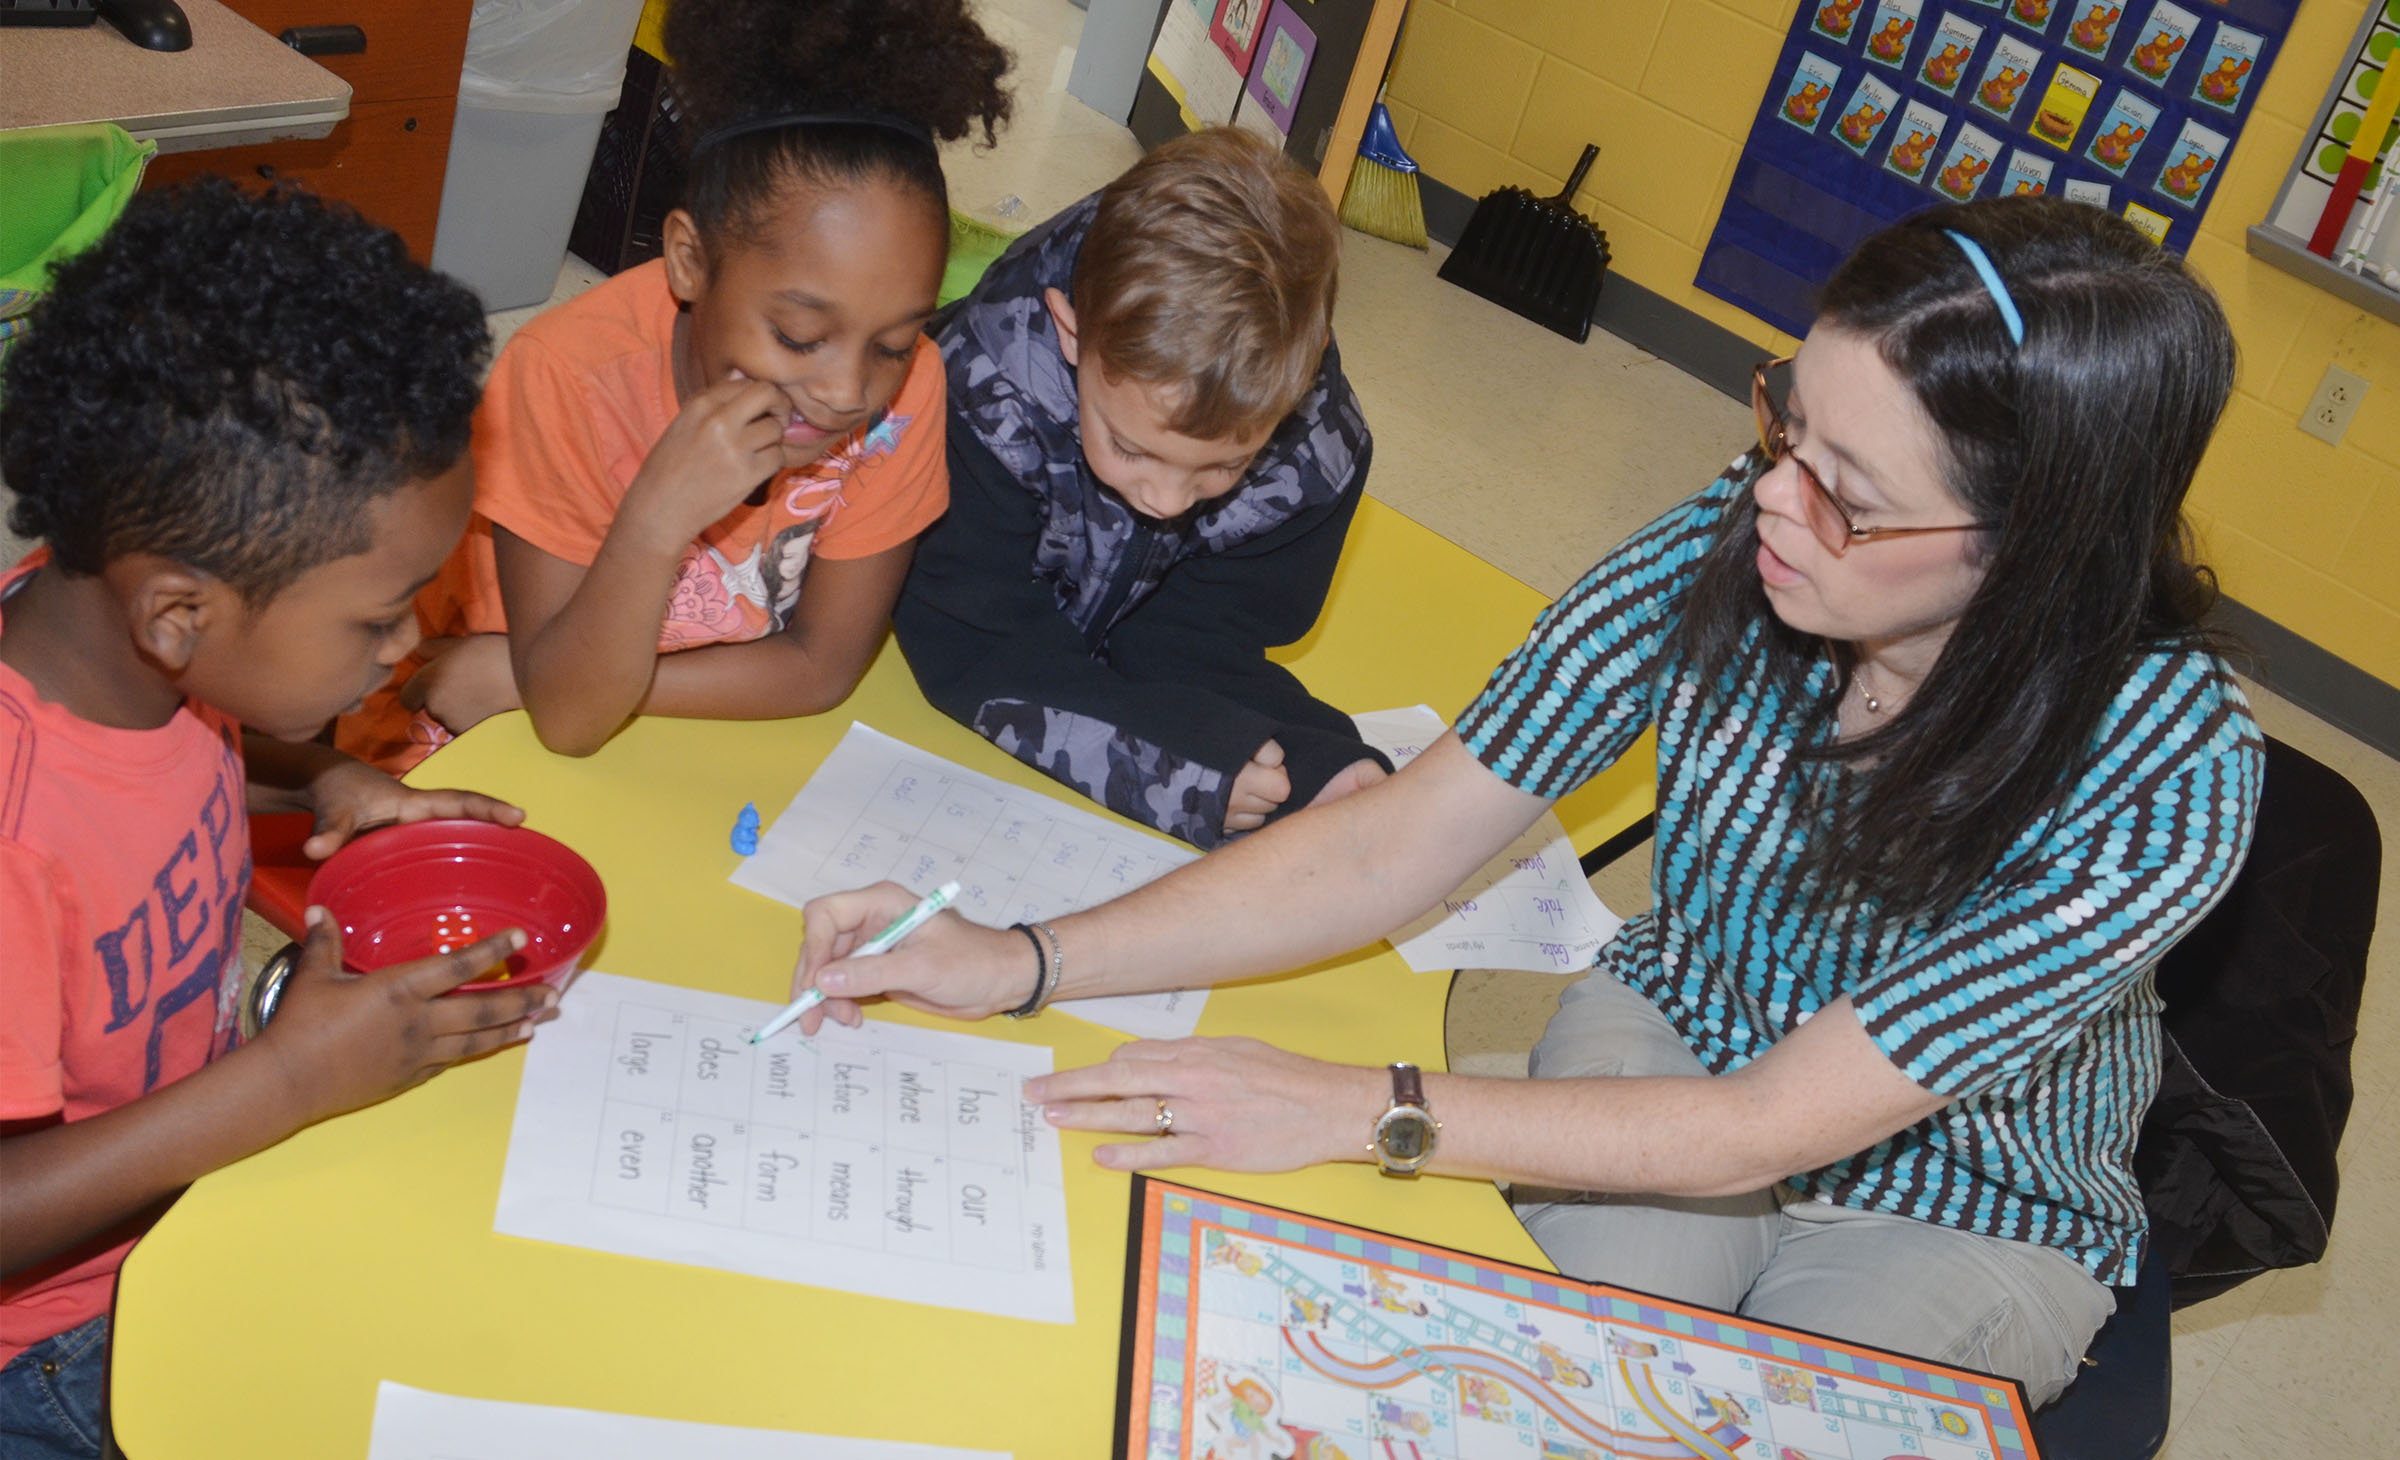 CES first-grade teacher Shirley Cox plays Candyland with students, from left, first-grader Drelynn Hollins, second-grader Lashonda Wilkinson and first-grader Gabe Prior to help them learn sight words.